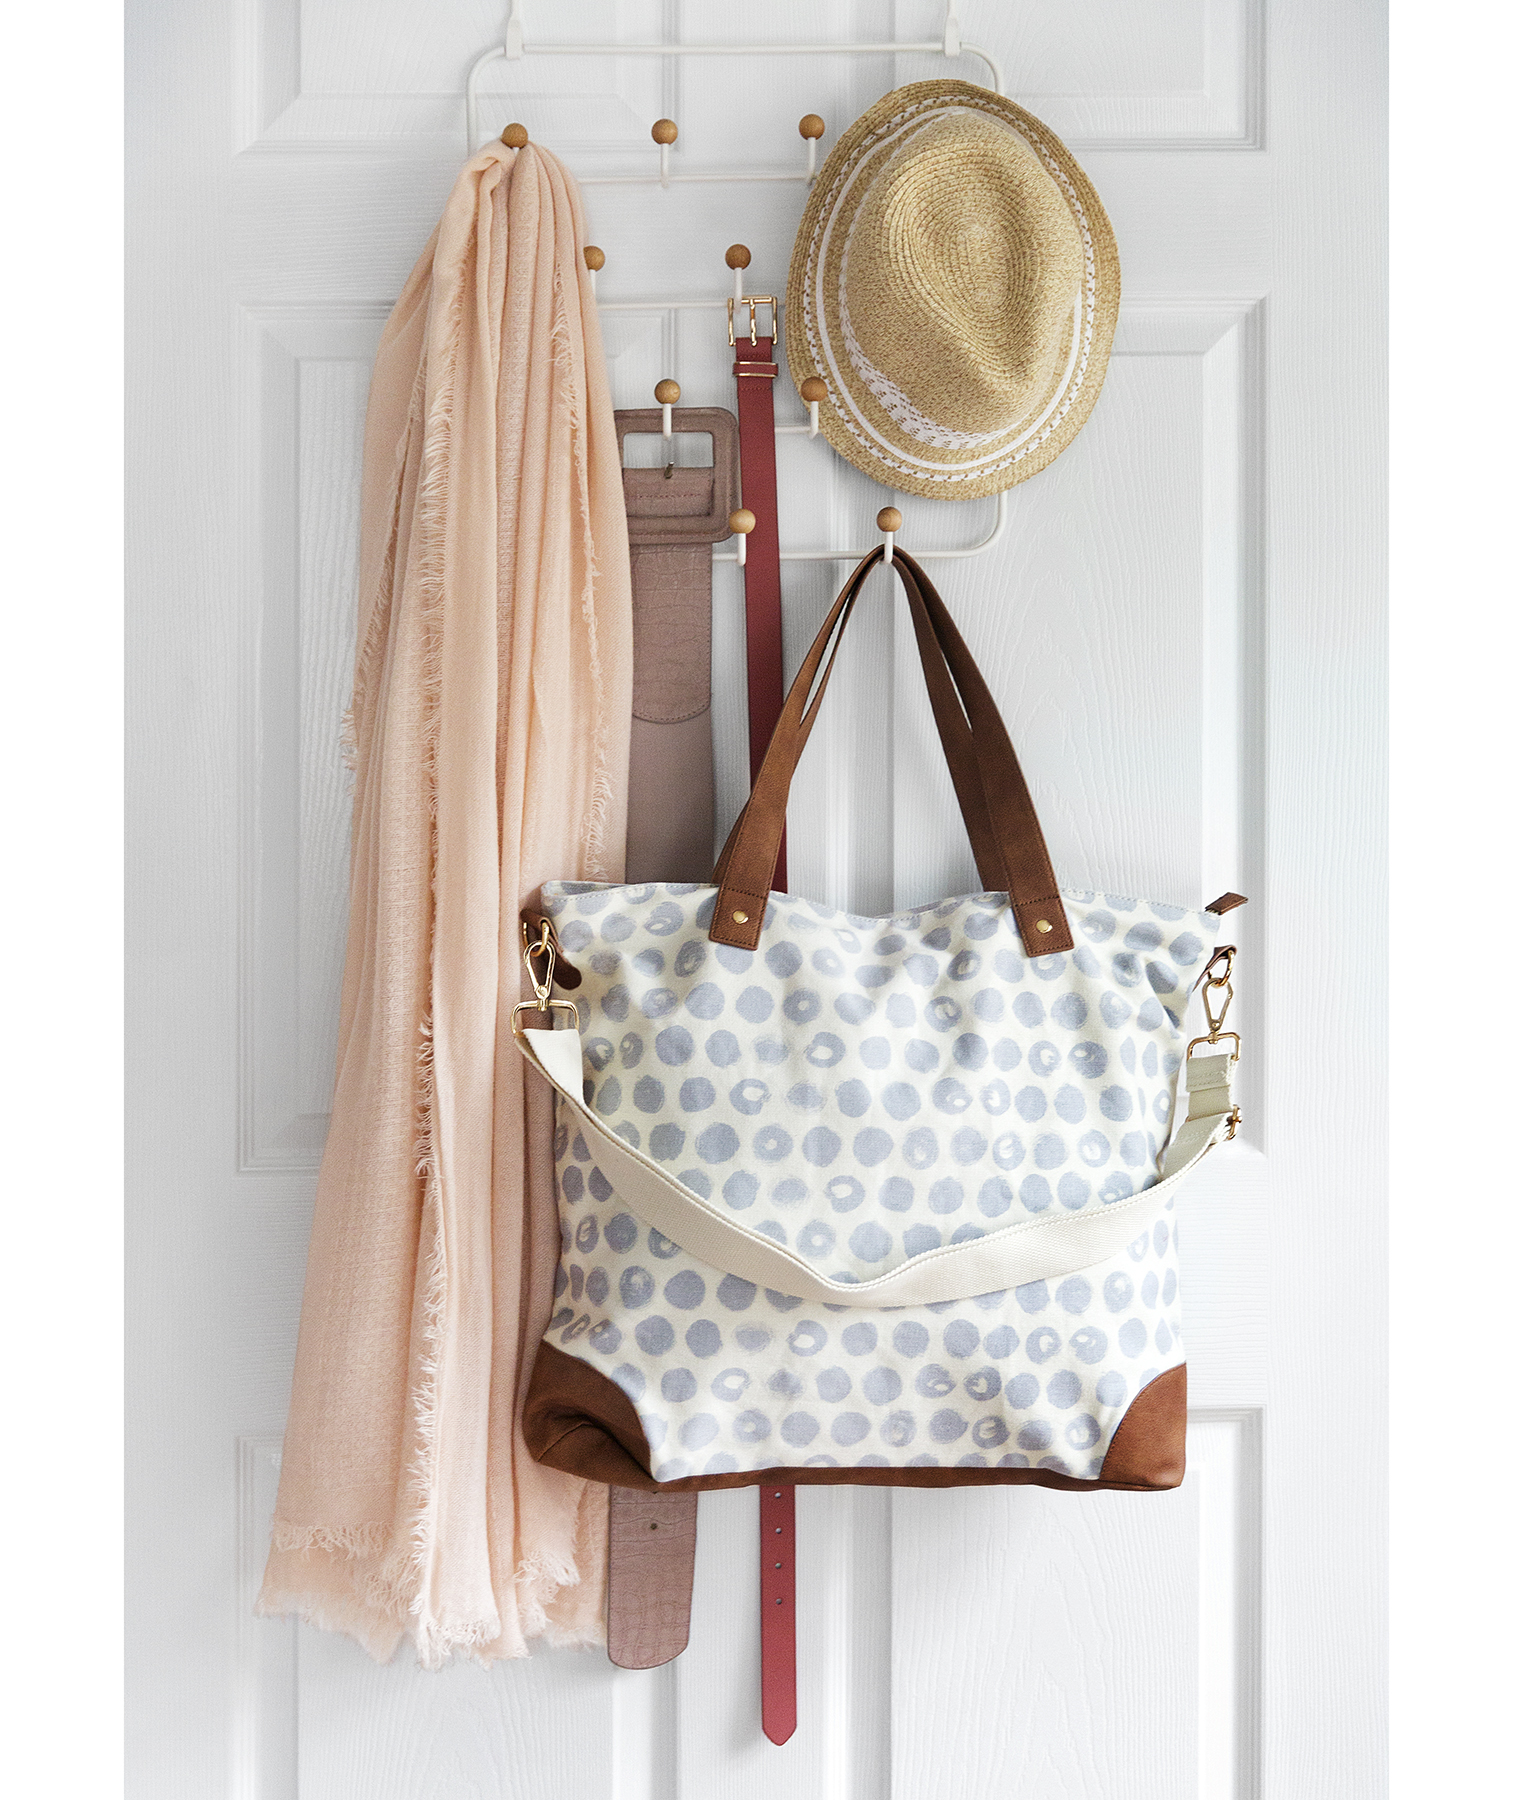 Rack, hooks, with purse, scarf, hat